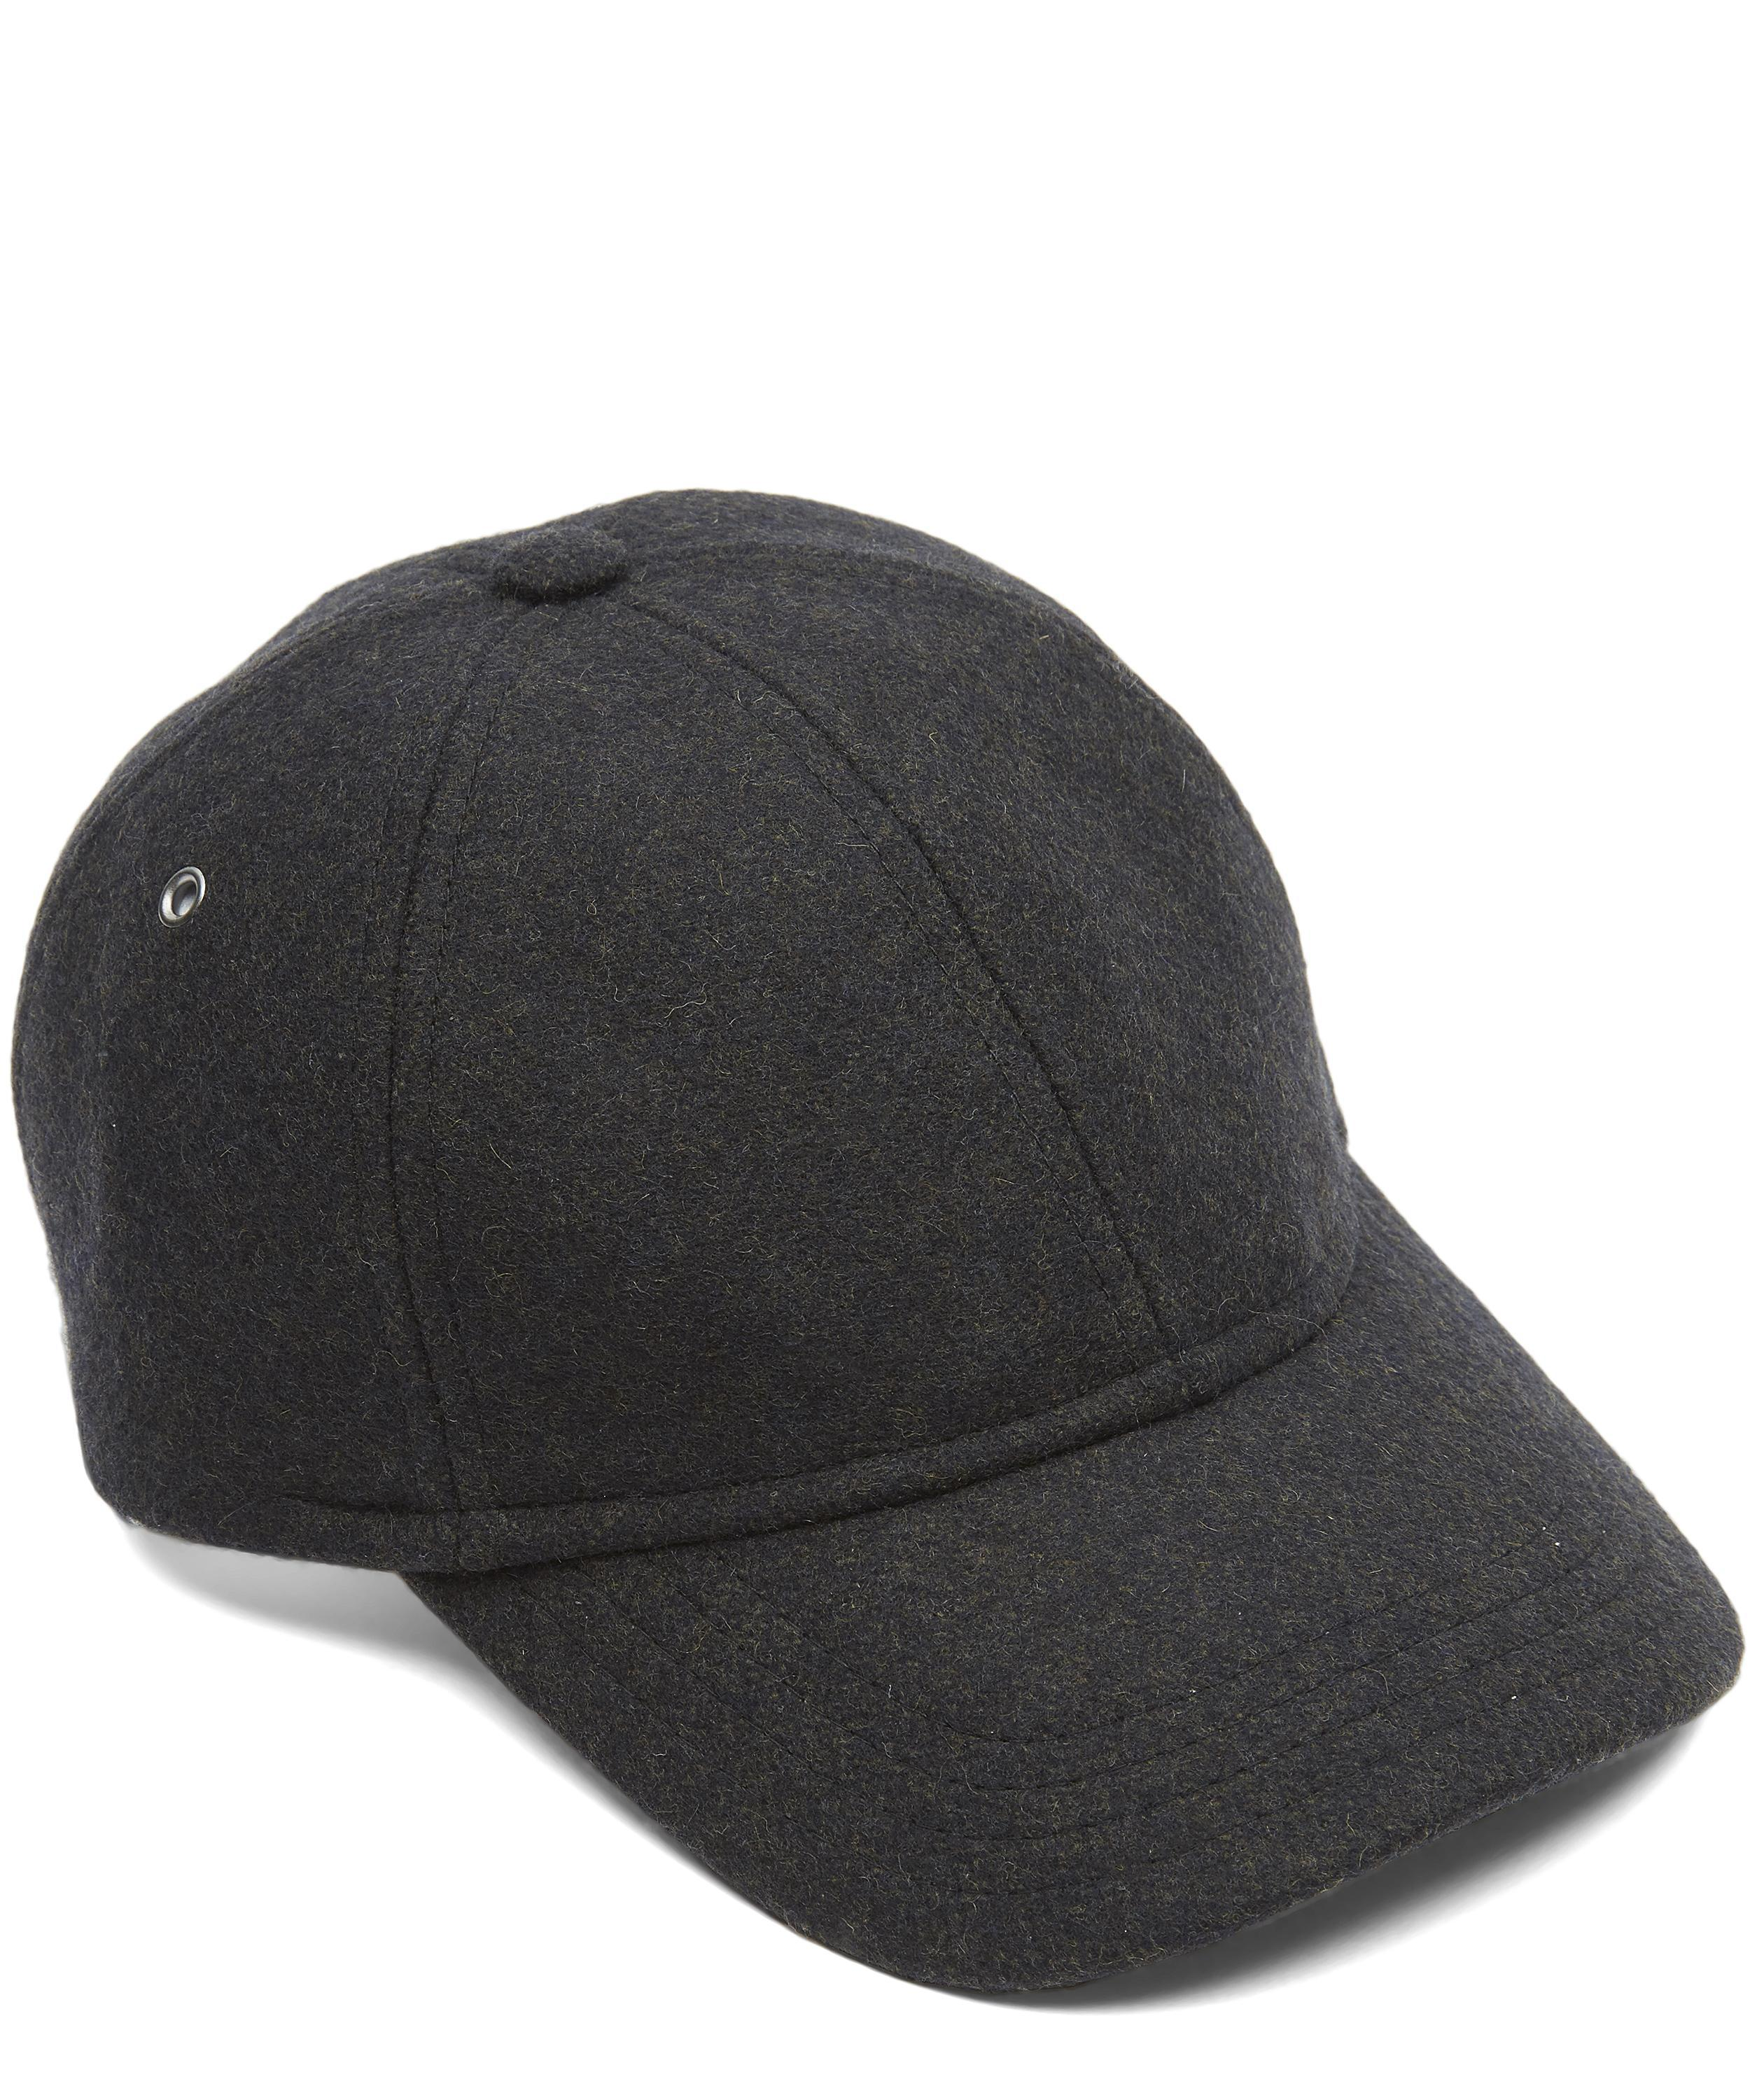 A.P.C. Louis Wool Baseball Cap for Men - Lyst 830e78cdb29